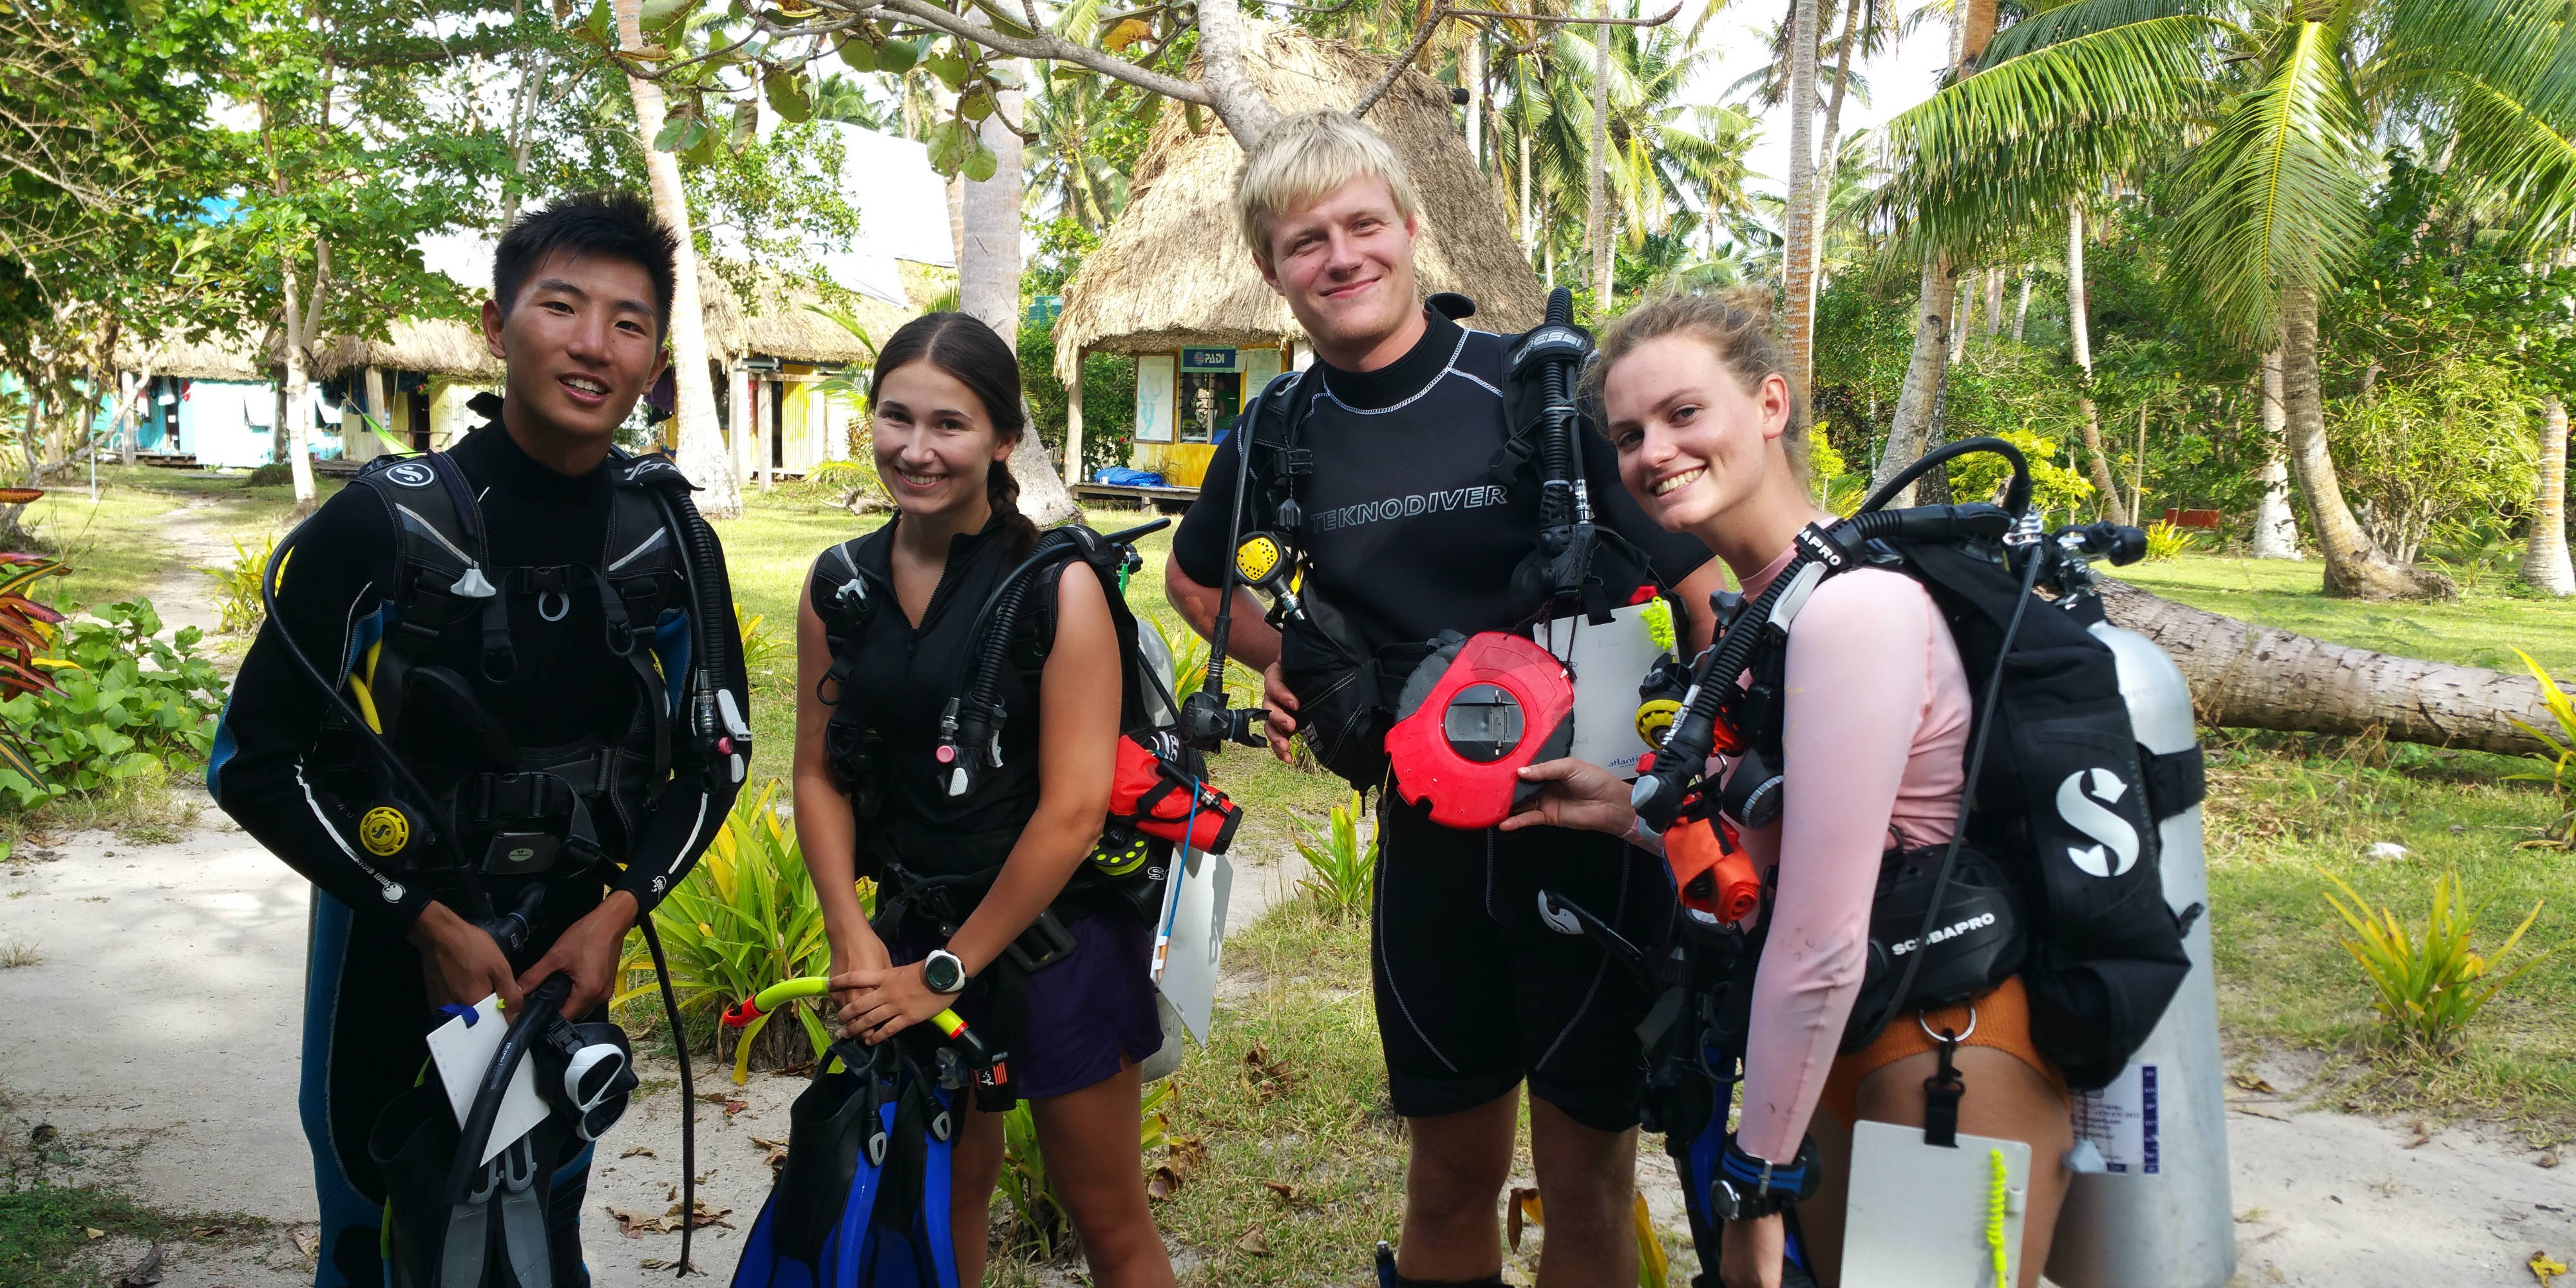 GVI participants in Caqalai prepare to set out on an open water dive. These dives count toward their PADI certifications.